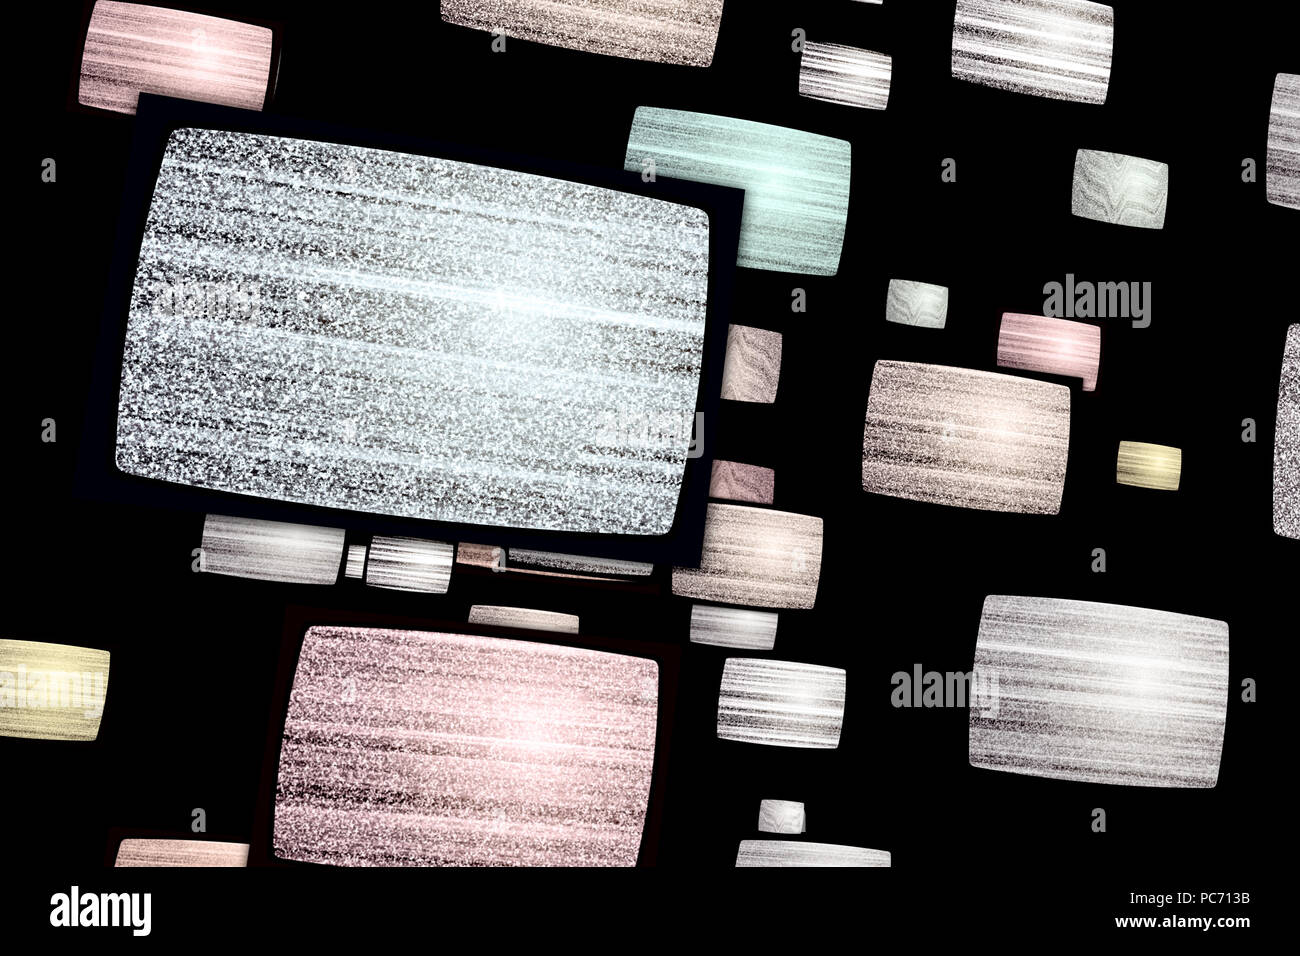 Noise on old tv sets. Flight between snowing television screens with snow and no signal. Displays in abstract concept. - Stock Image